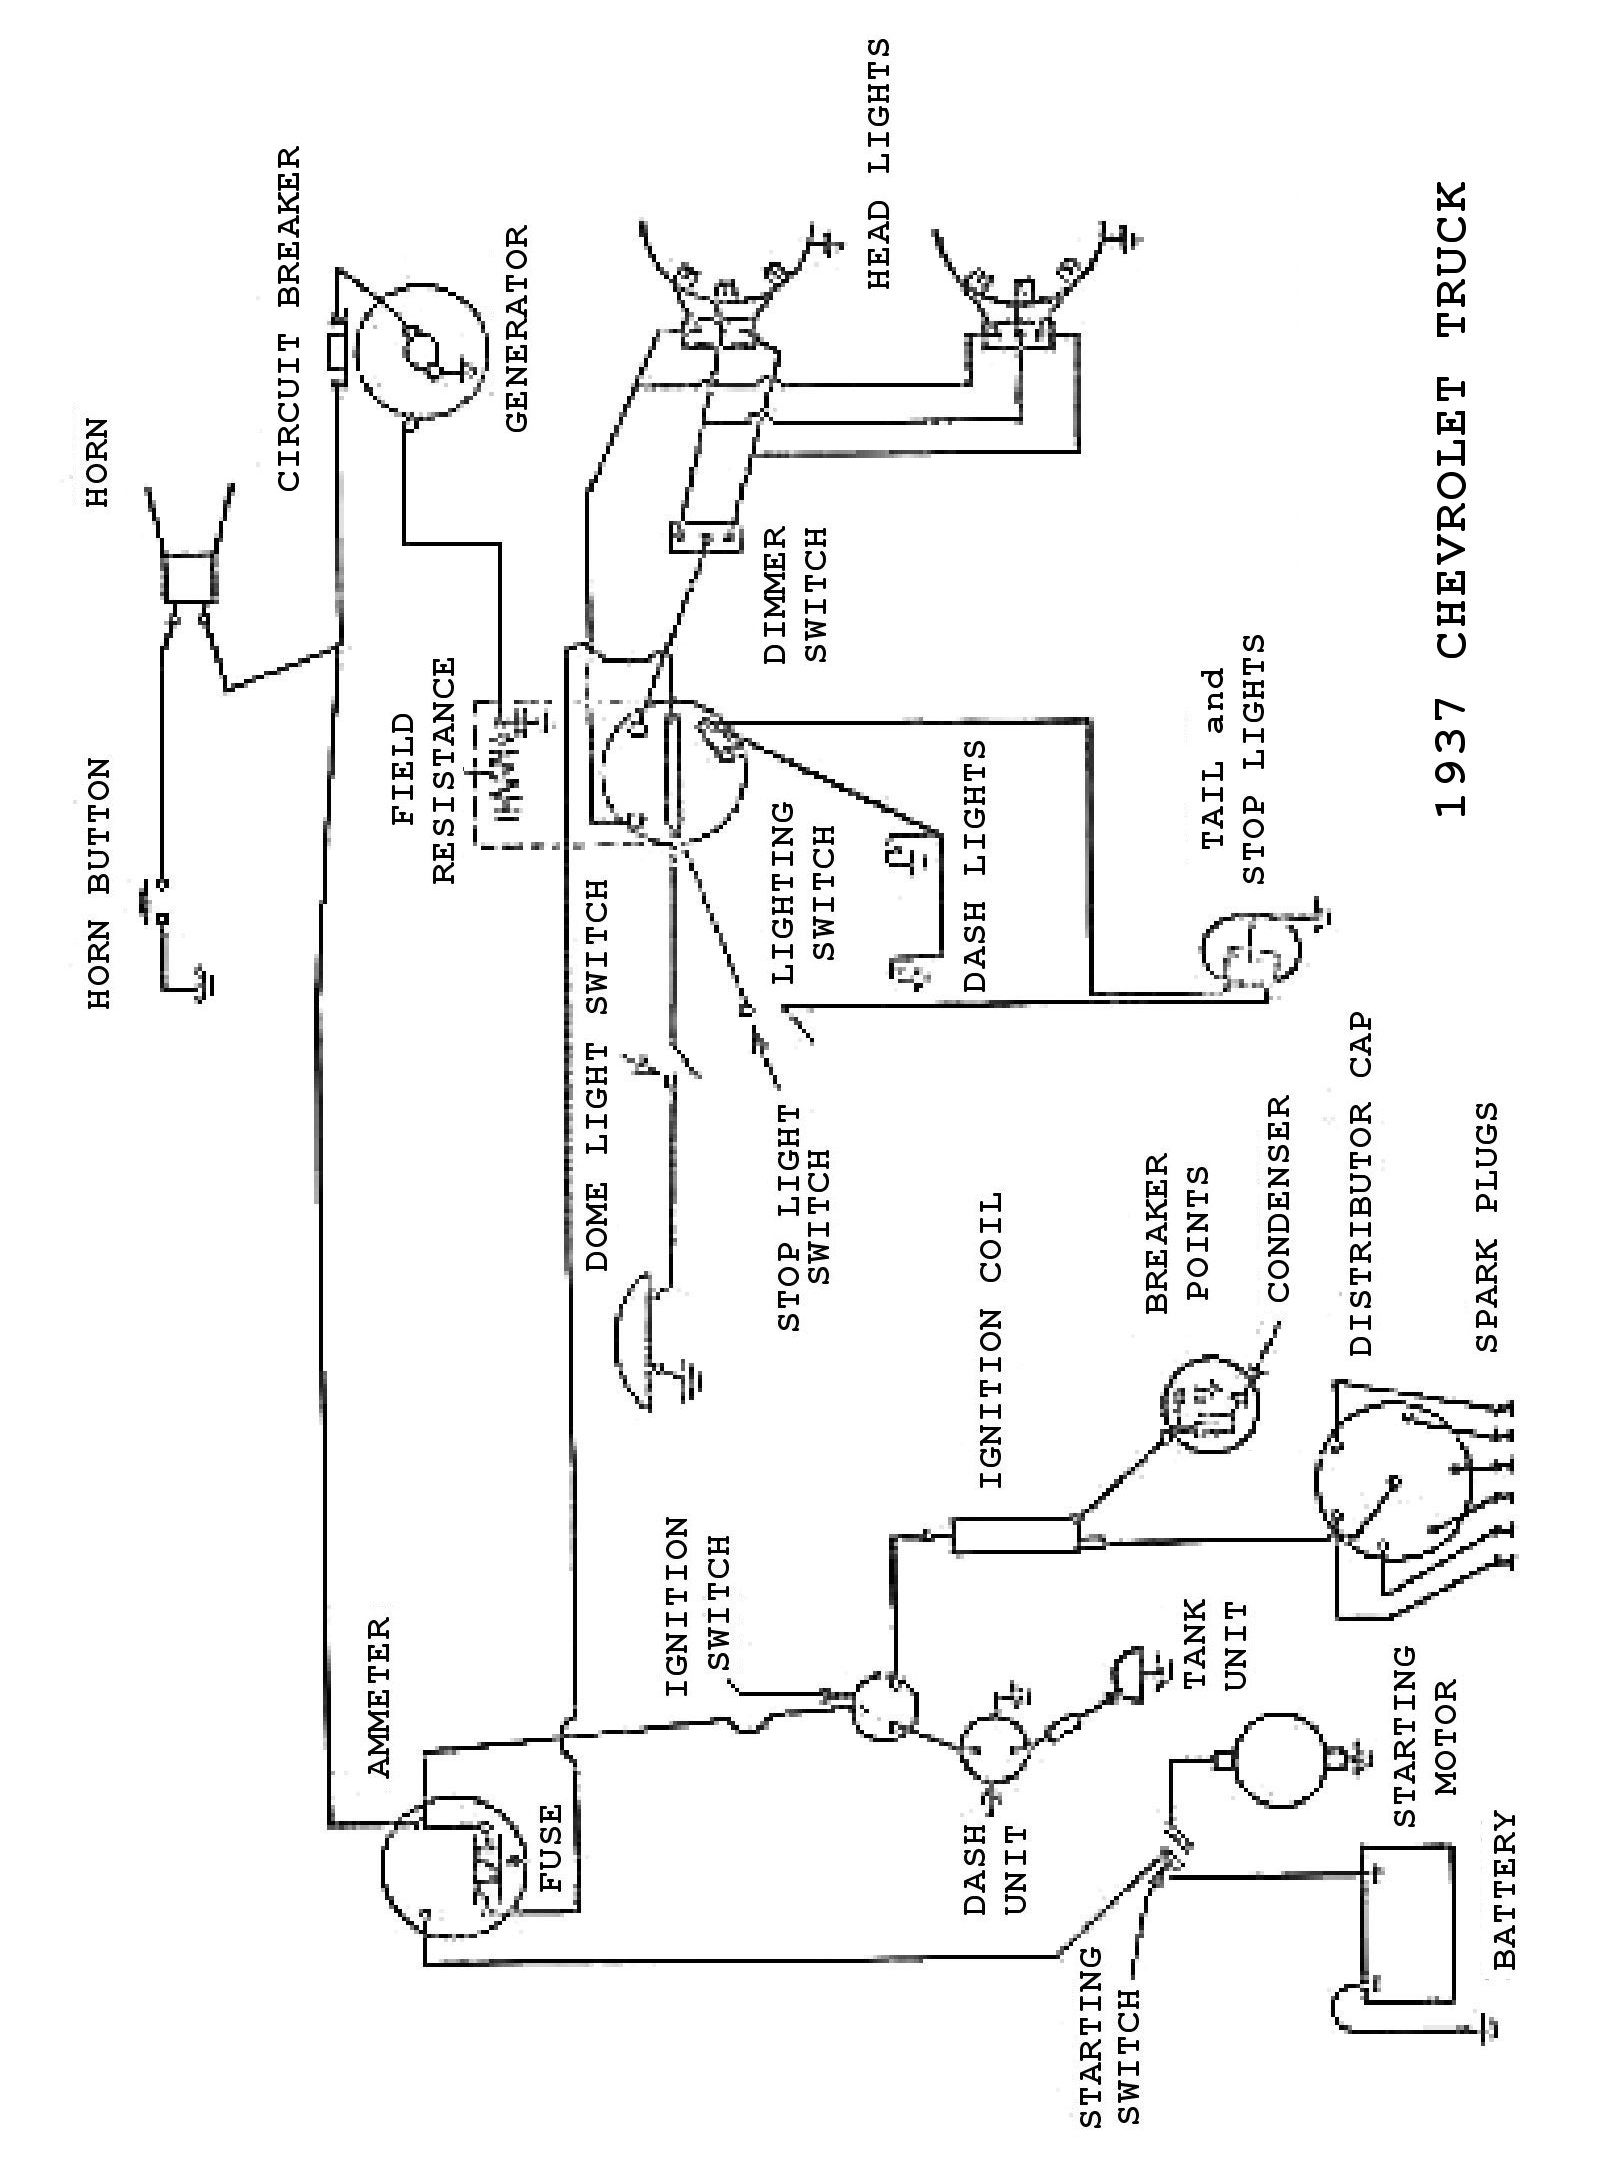 1952 Chevy Wiring Diagram | Wiring Diagram on